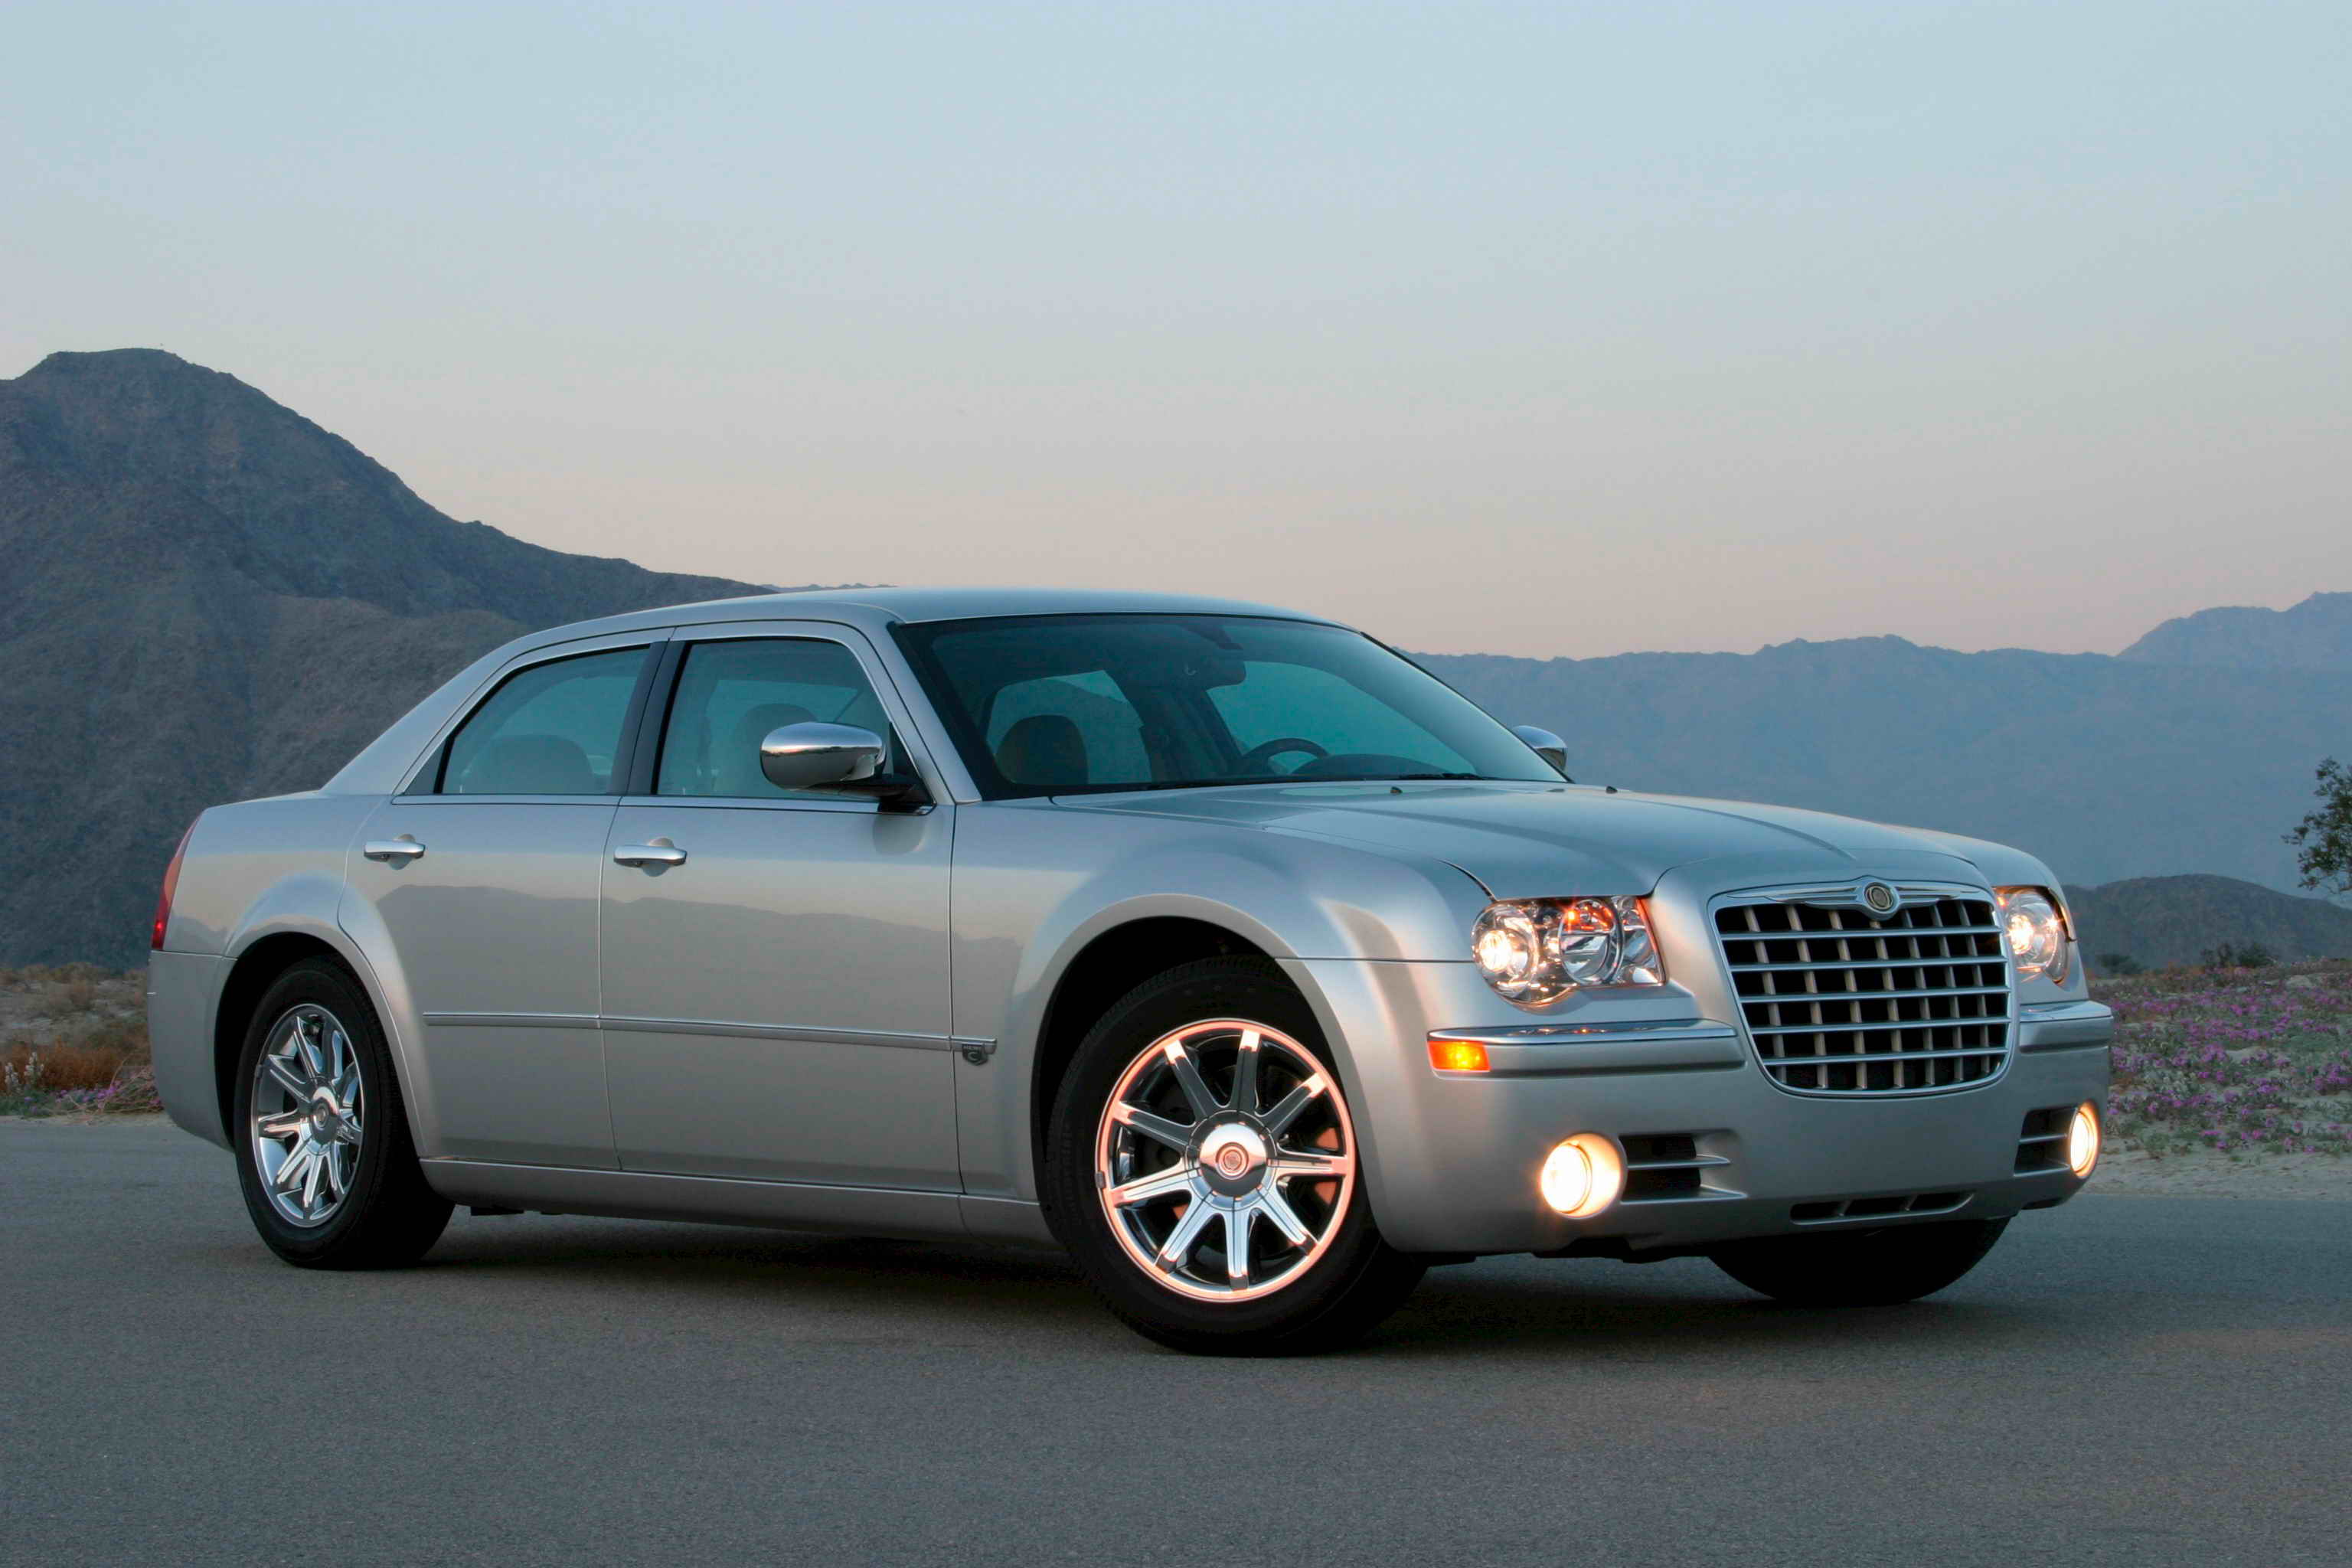 limited wantagh car ny island suffolk sdn available in nassau long sale chrysler rwd used for